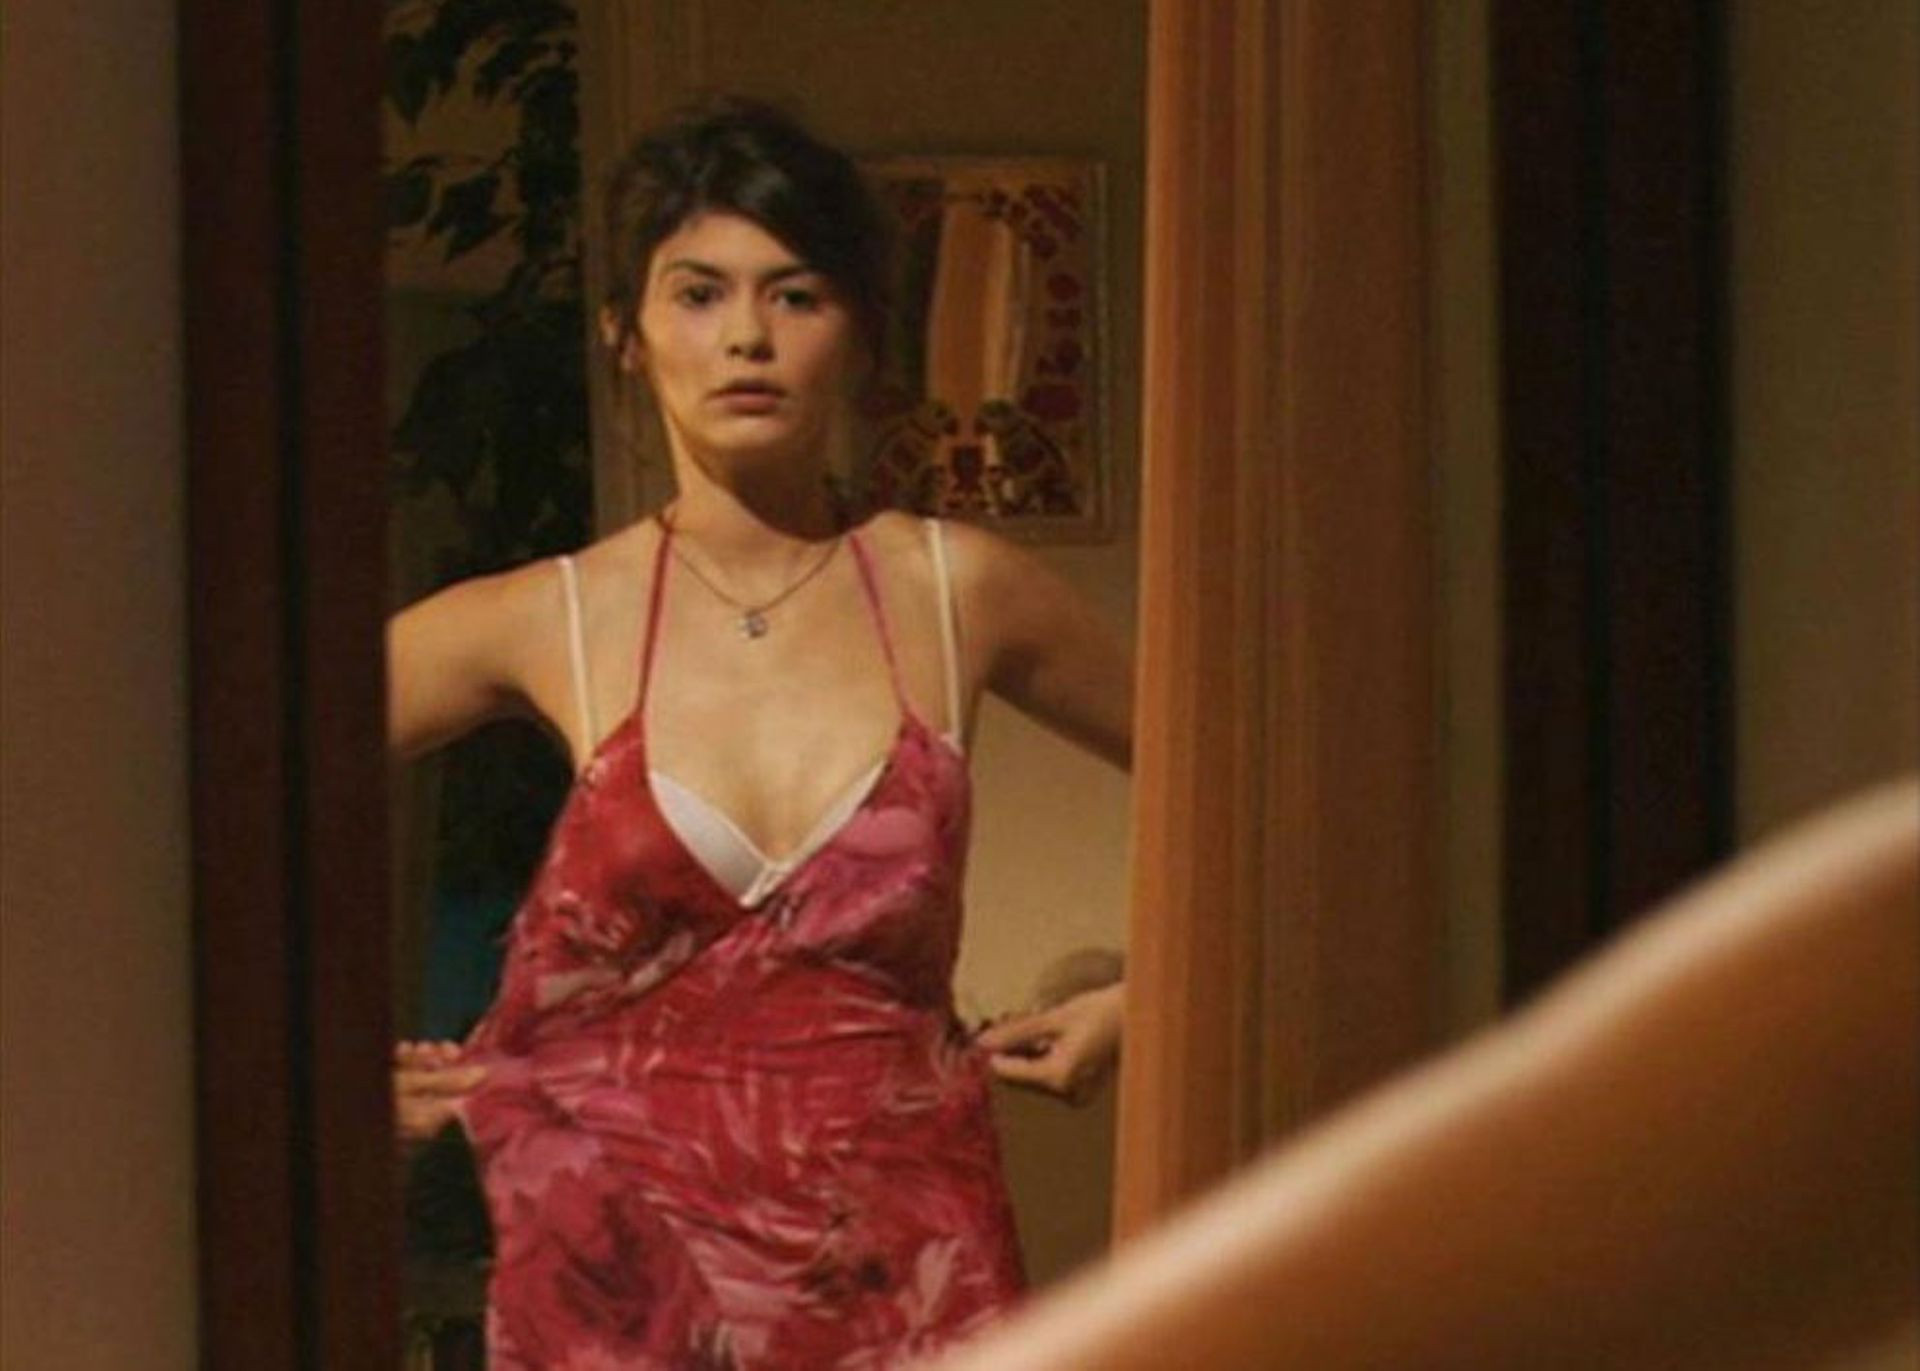 Audrey Tautou Nude Sexy Russian Dolls fappenings.com 4